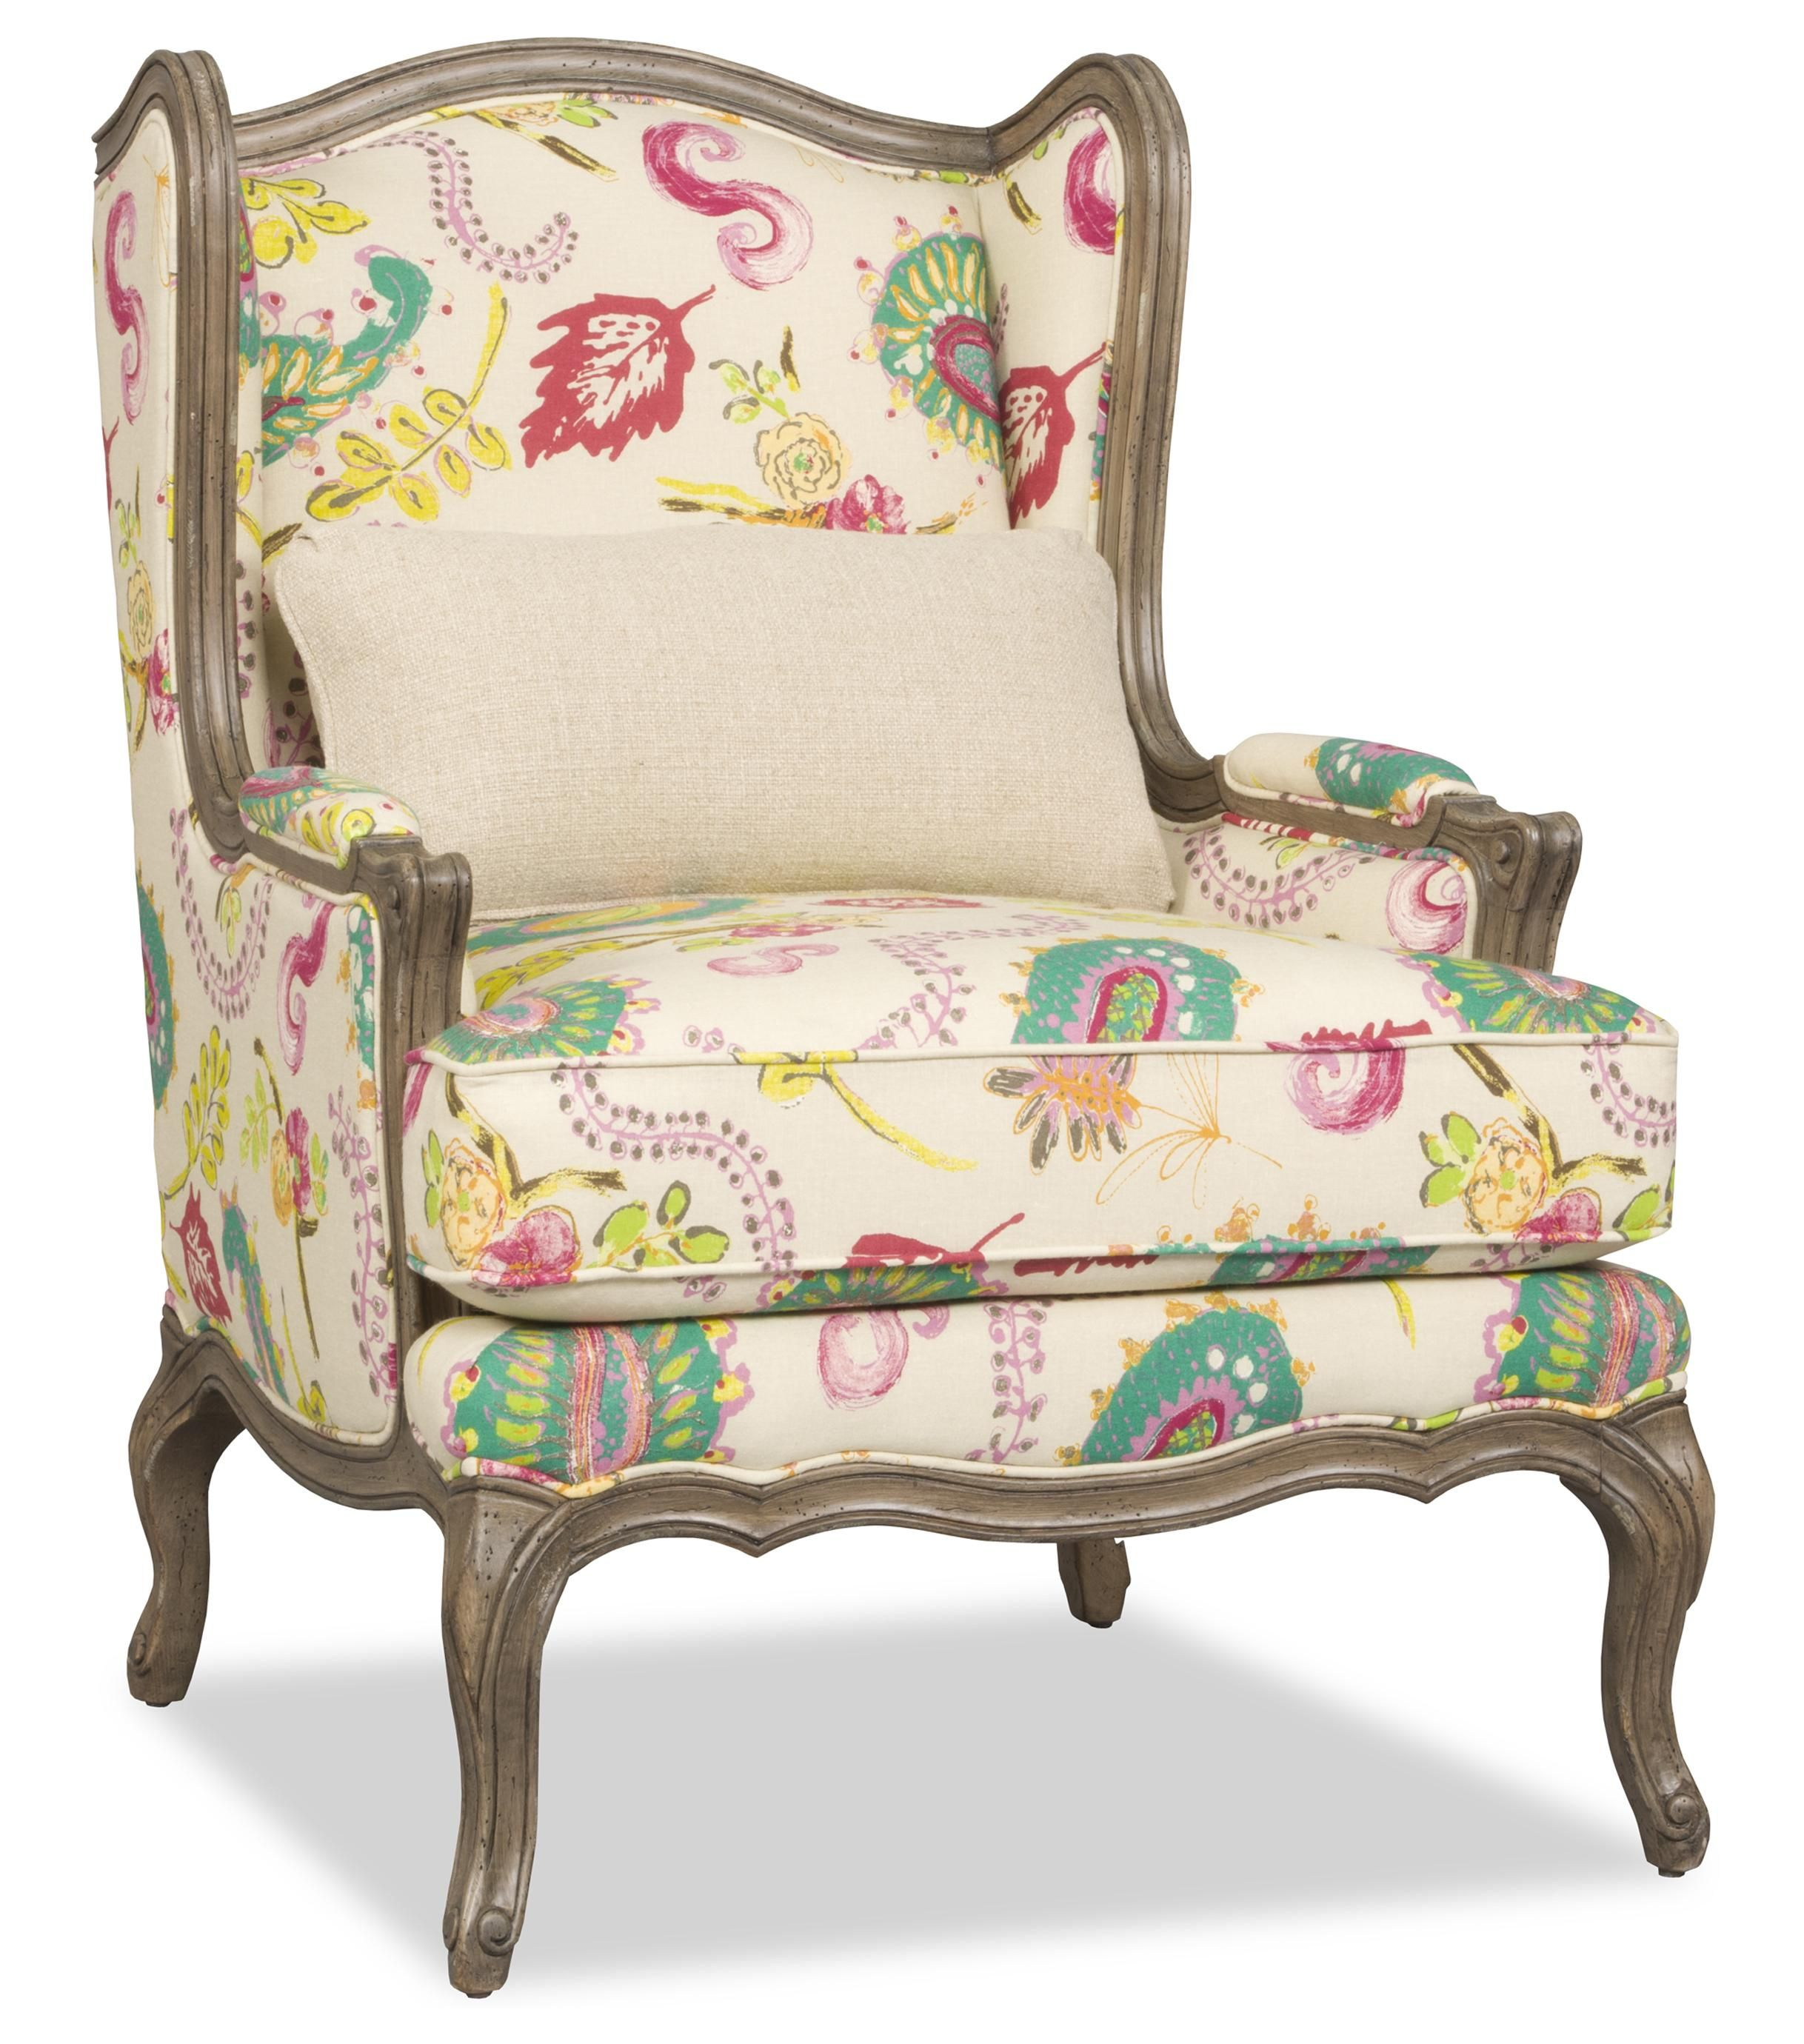 shop for sam moore kelsea wing chair and other living room chairs at home furnishings in piedmont and belton sc this wing chair comes standard